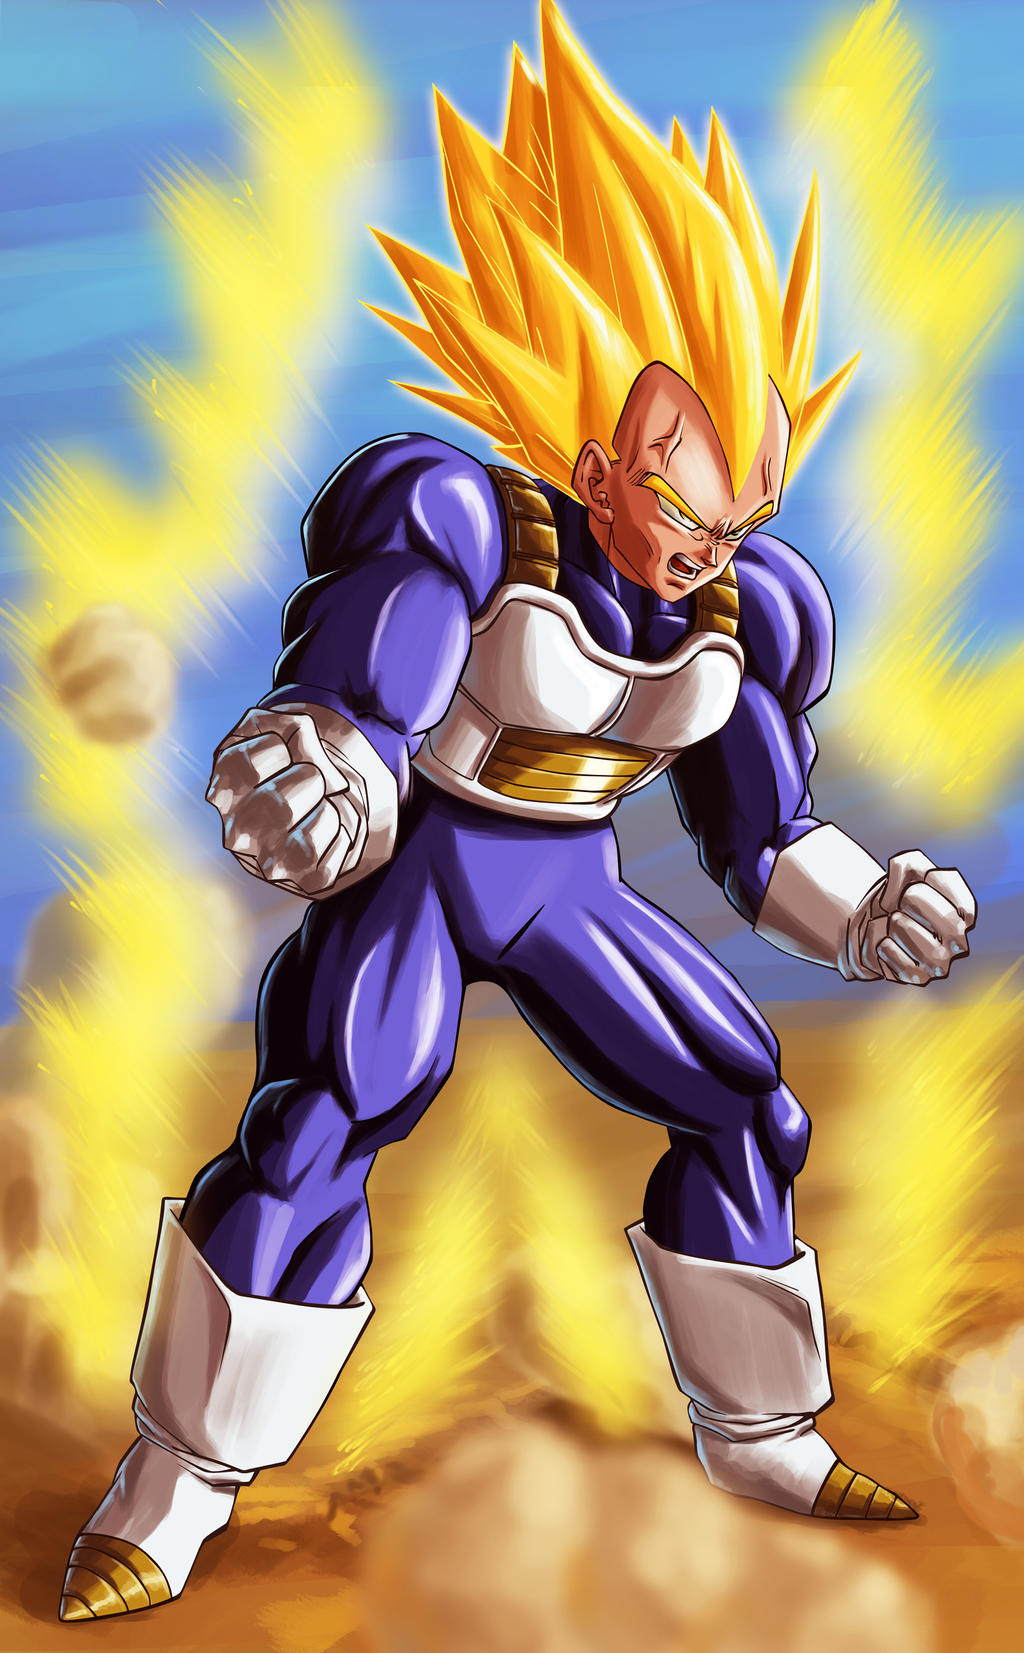 Super vegeta by vinc3412 on deviantart - Goku vs vegeta super saiyan 5 ...